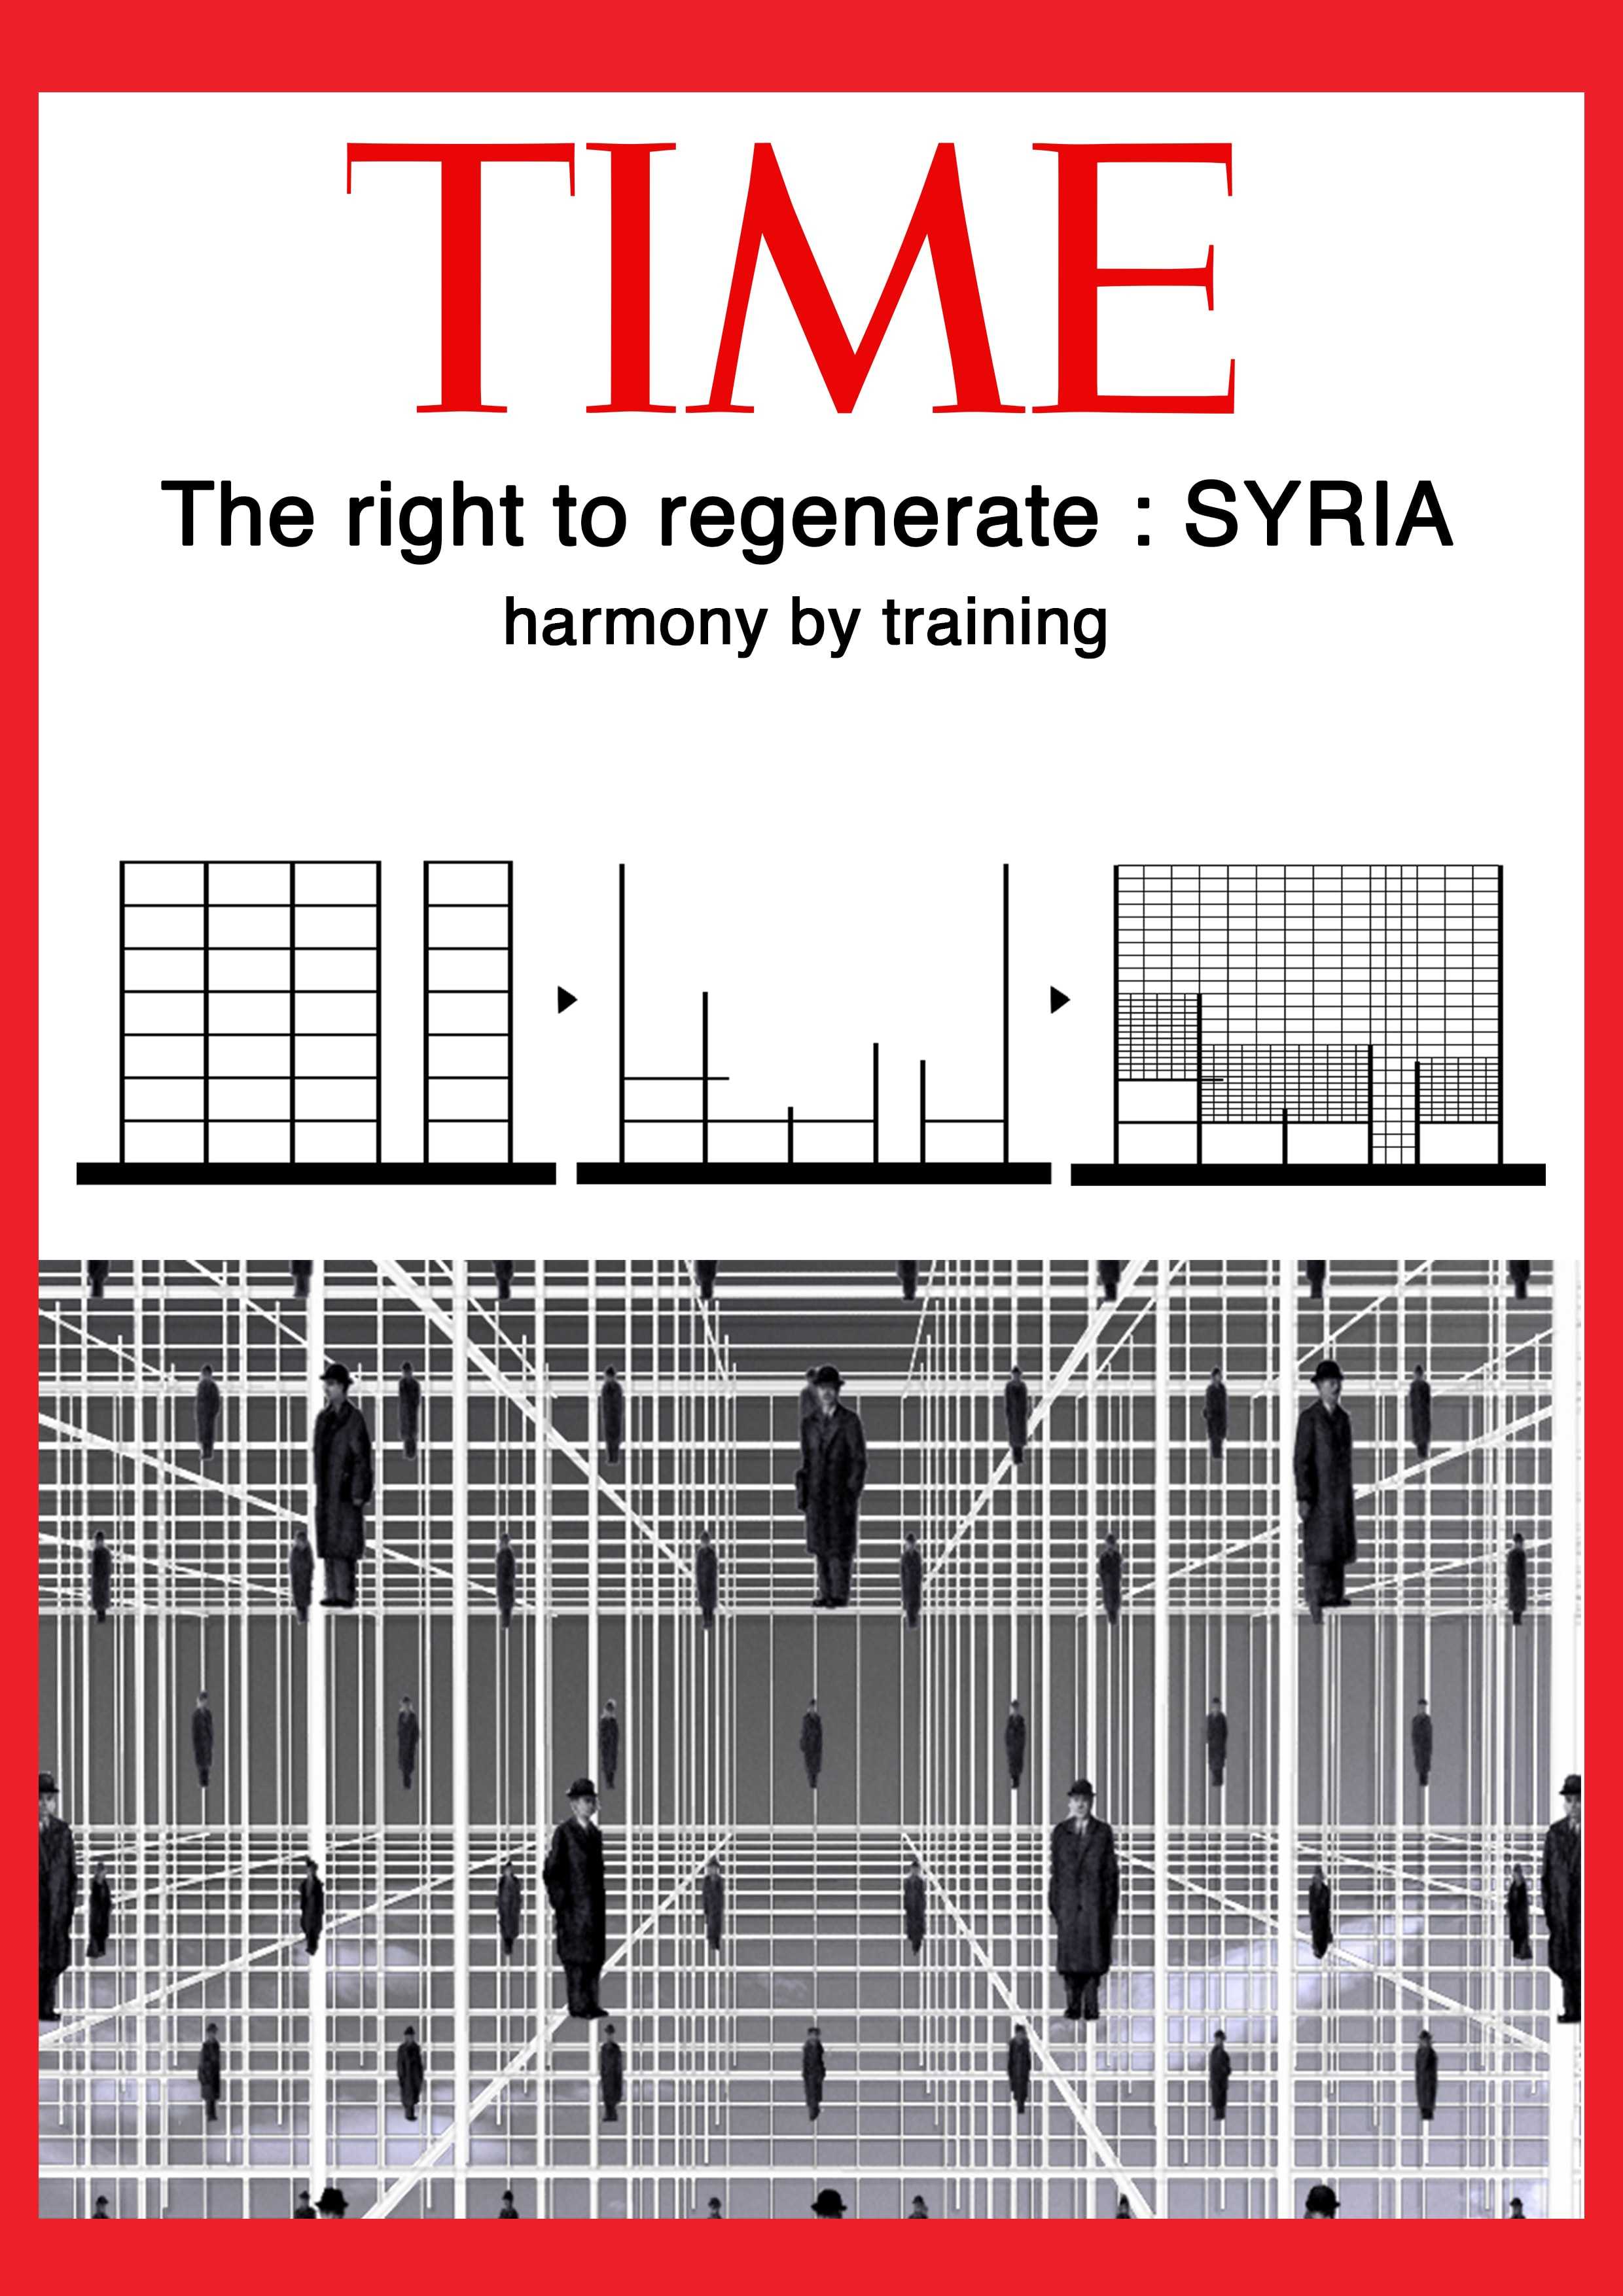 The right to regenerate, Syria